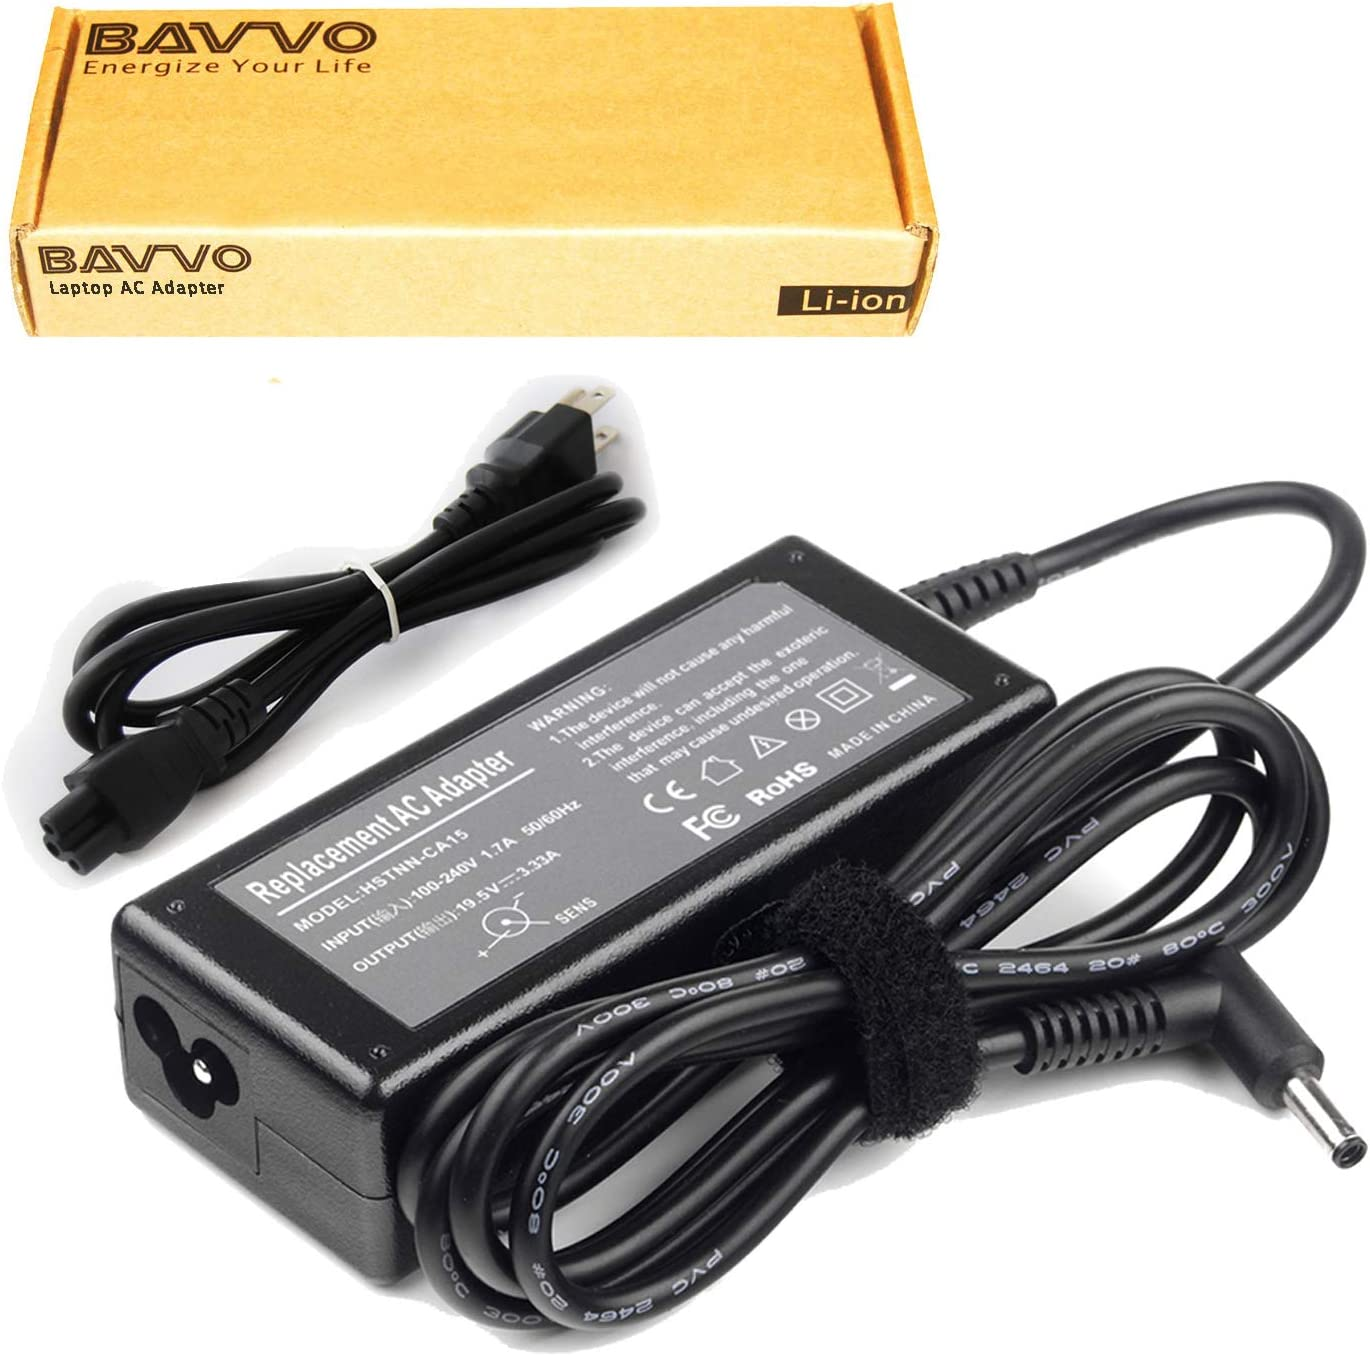 Bavvo 65W Adapter Compatible with HP Envy 14-3010NR A9P67UA